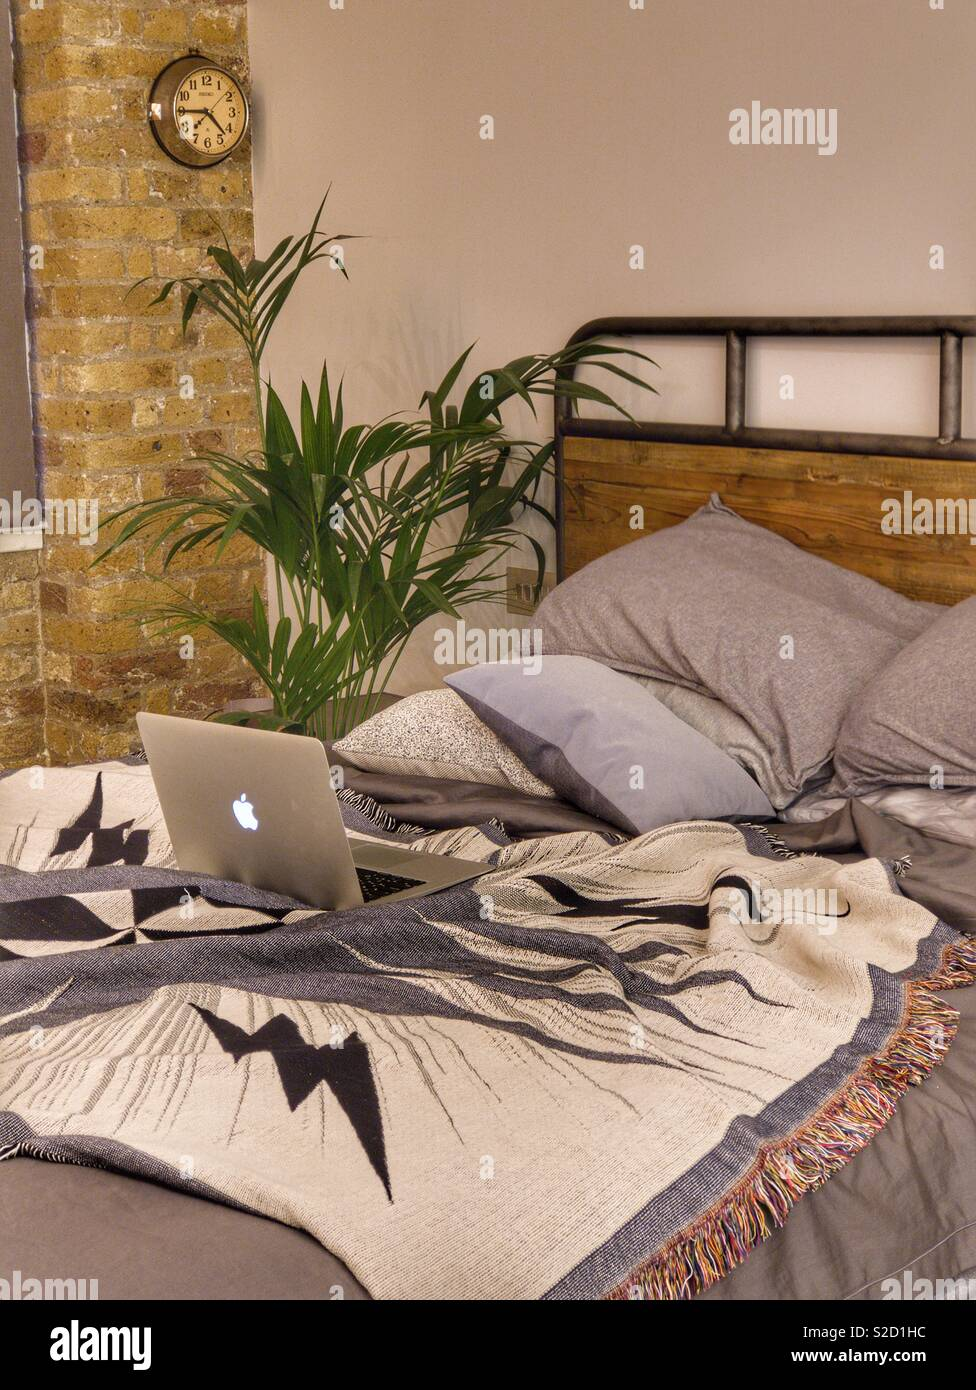 Messy bed in loft style industrial chic bedroom with palm tree and mac laptop - Stock Image